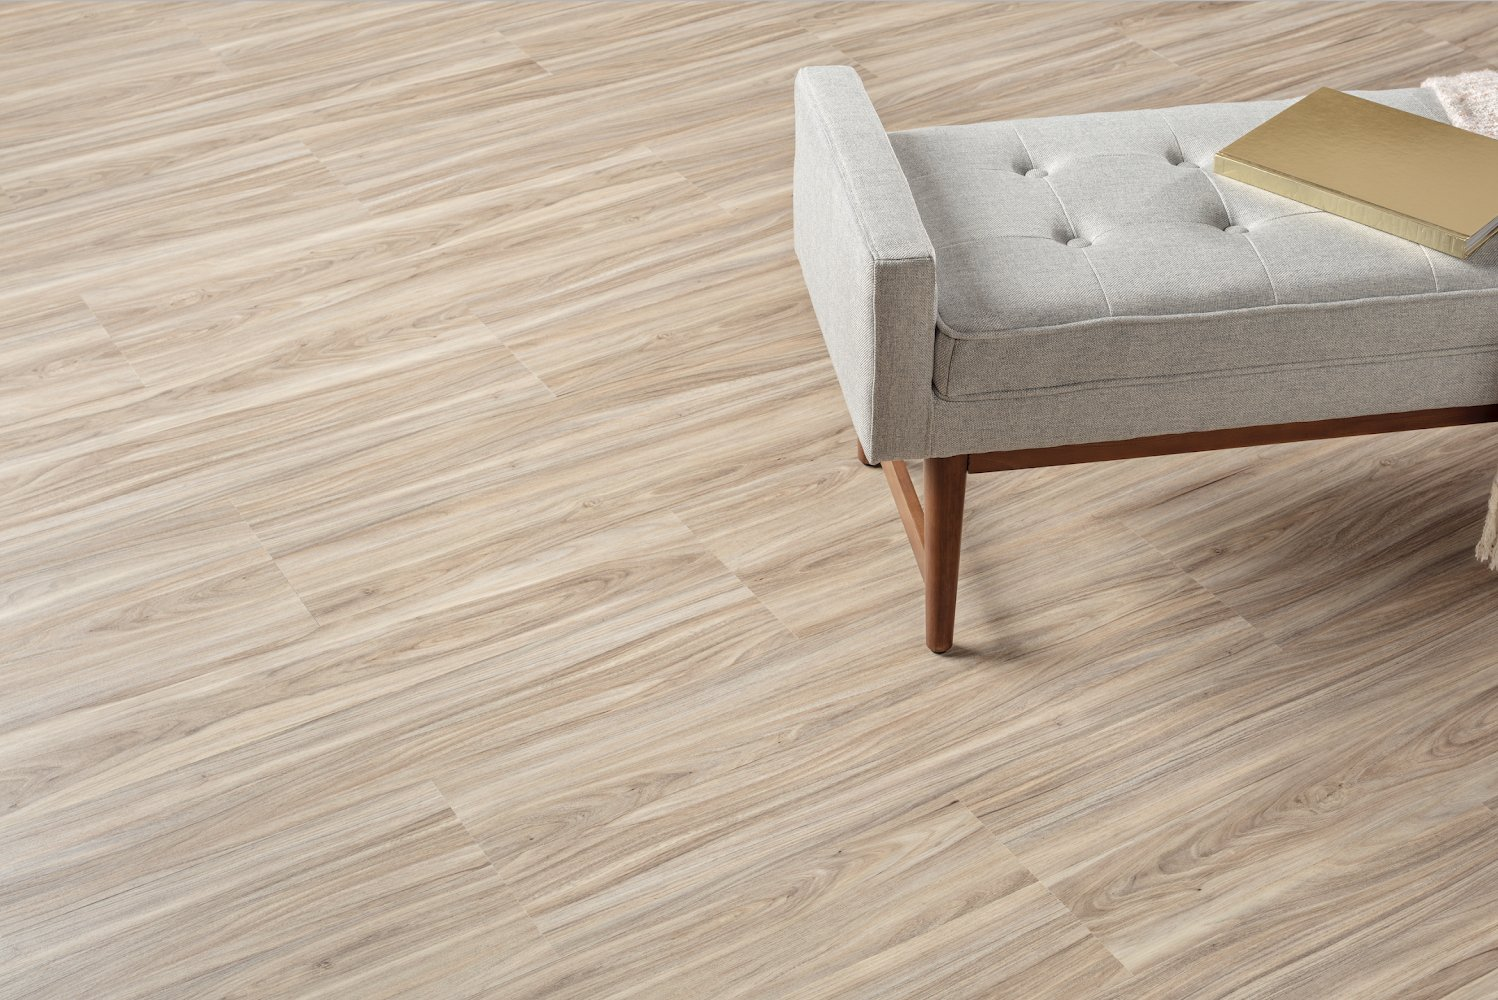 The Avara 2mm collection includes 26 vinyl designs—24 planks and two tiles—that were curated from current best-selling 3mm Parterre collections.